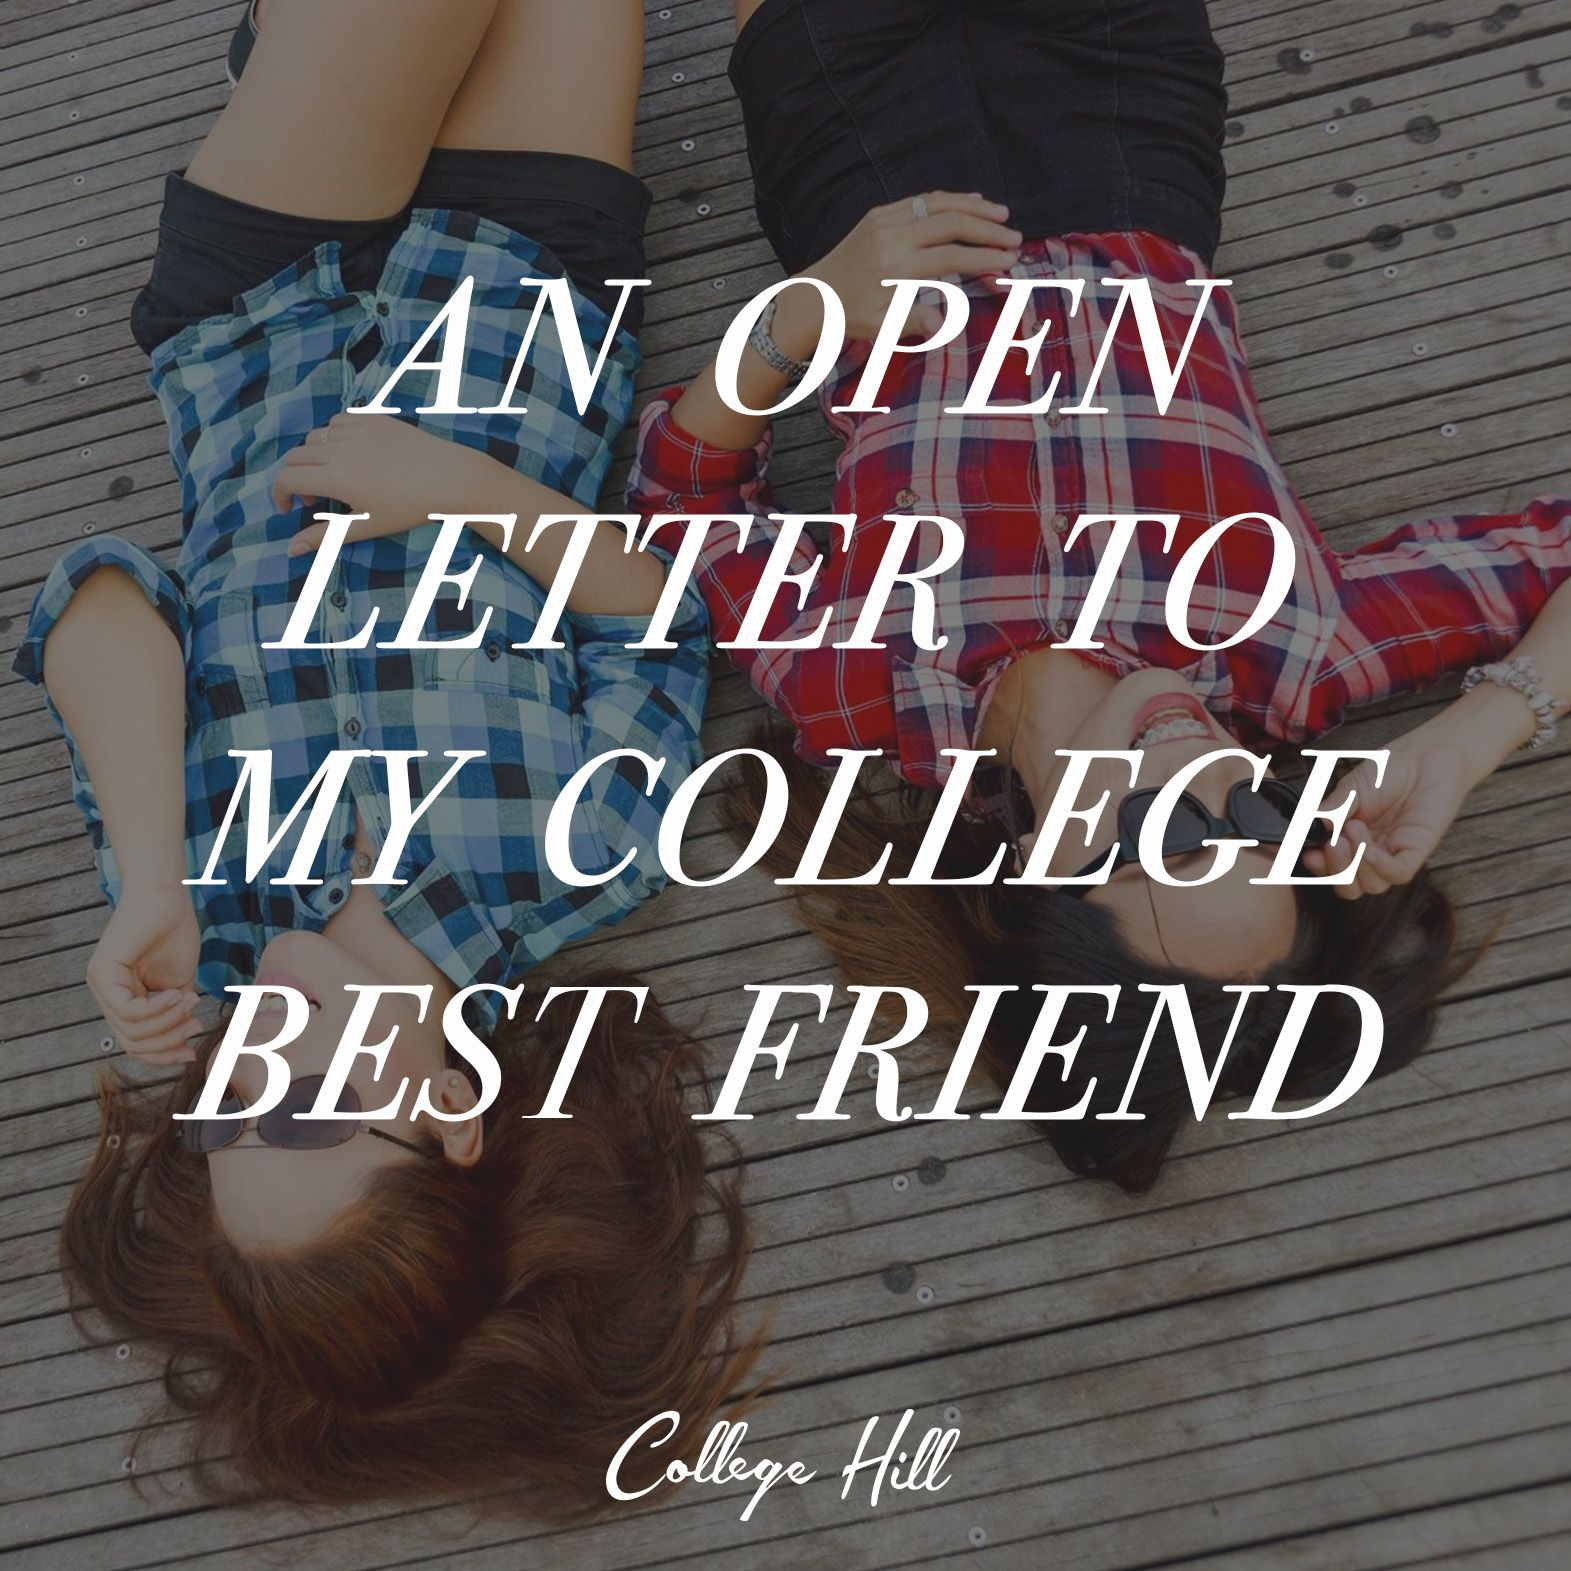 Girl Meets My College Friend